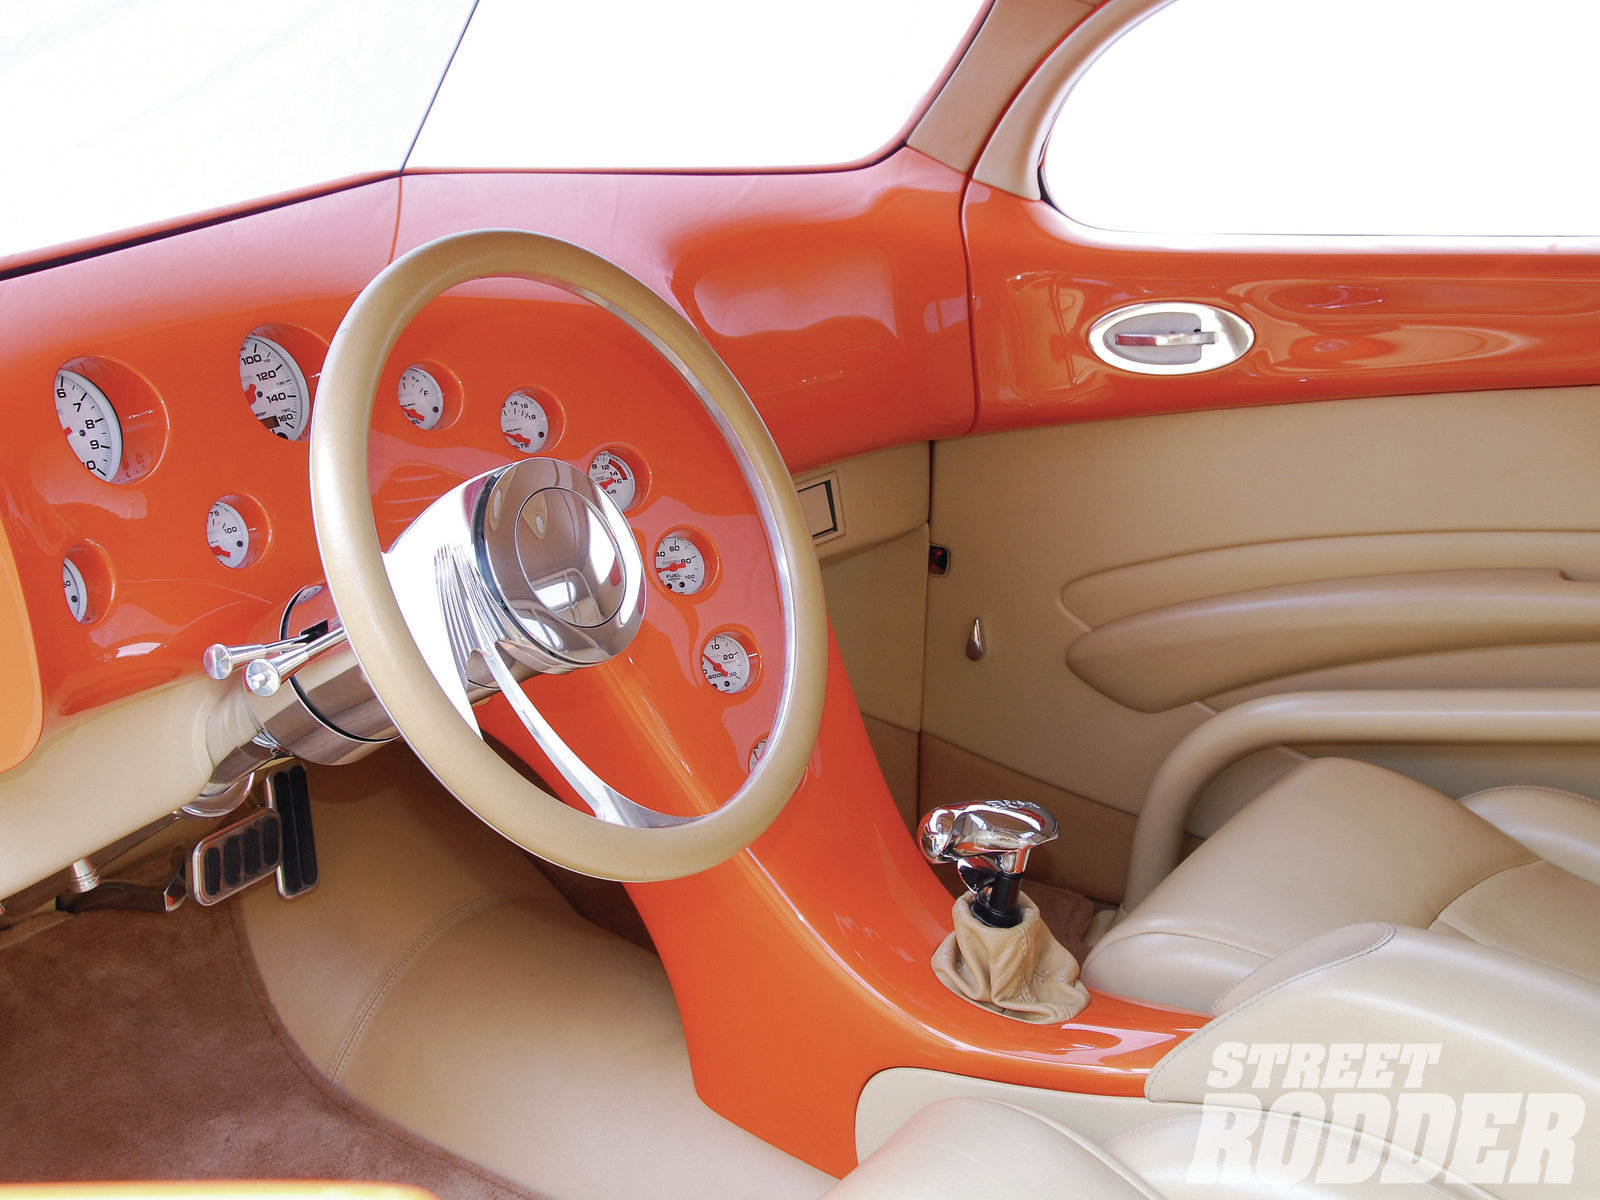 To bring plenty of class into the business office, Dean Alexander at The Hot Rod Garage created a flowing dash and console adorned with plenty of smooth tan leather accented by German square-weave carpeting. Auto Meter gauges and a B&M shifter keep it all real.